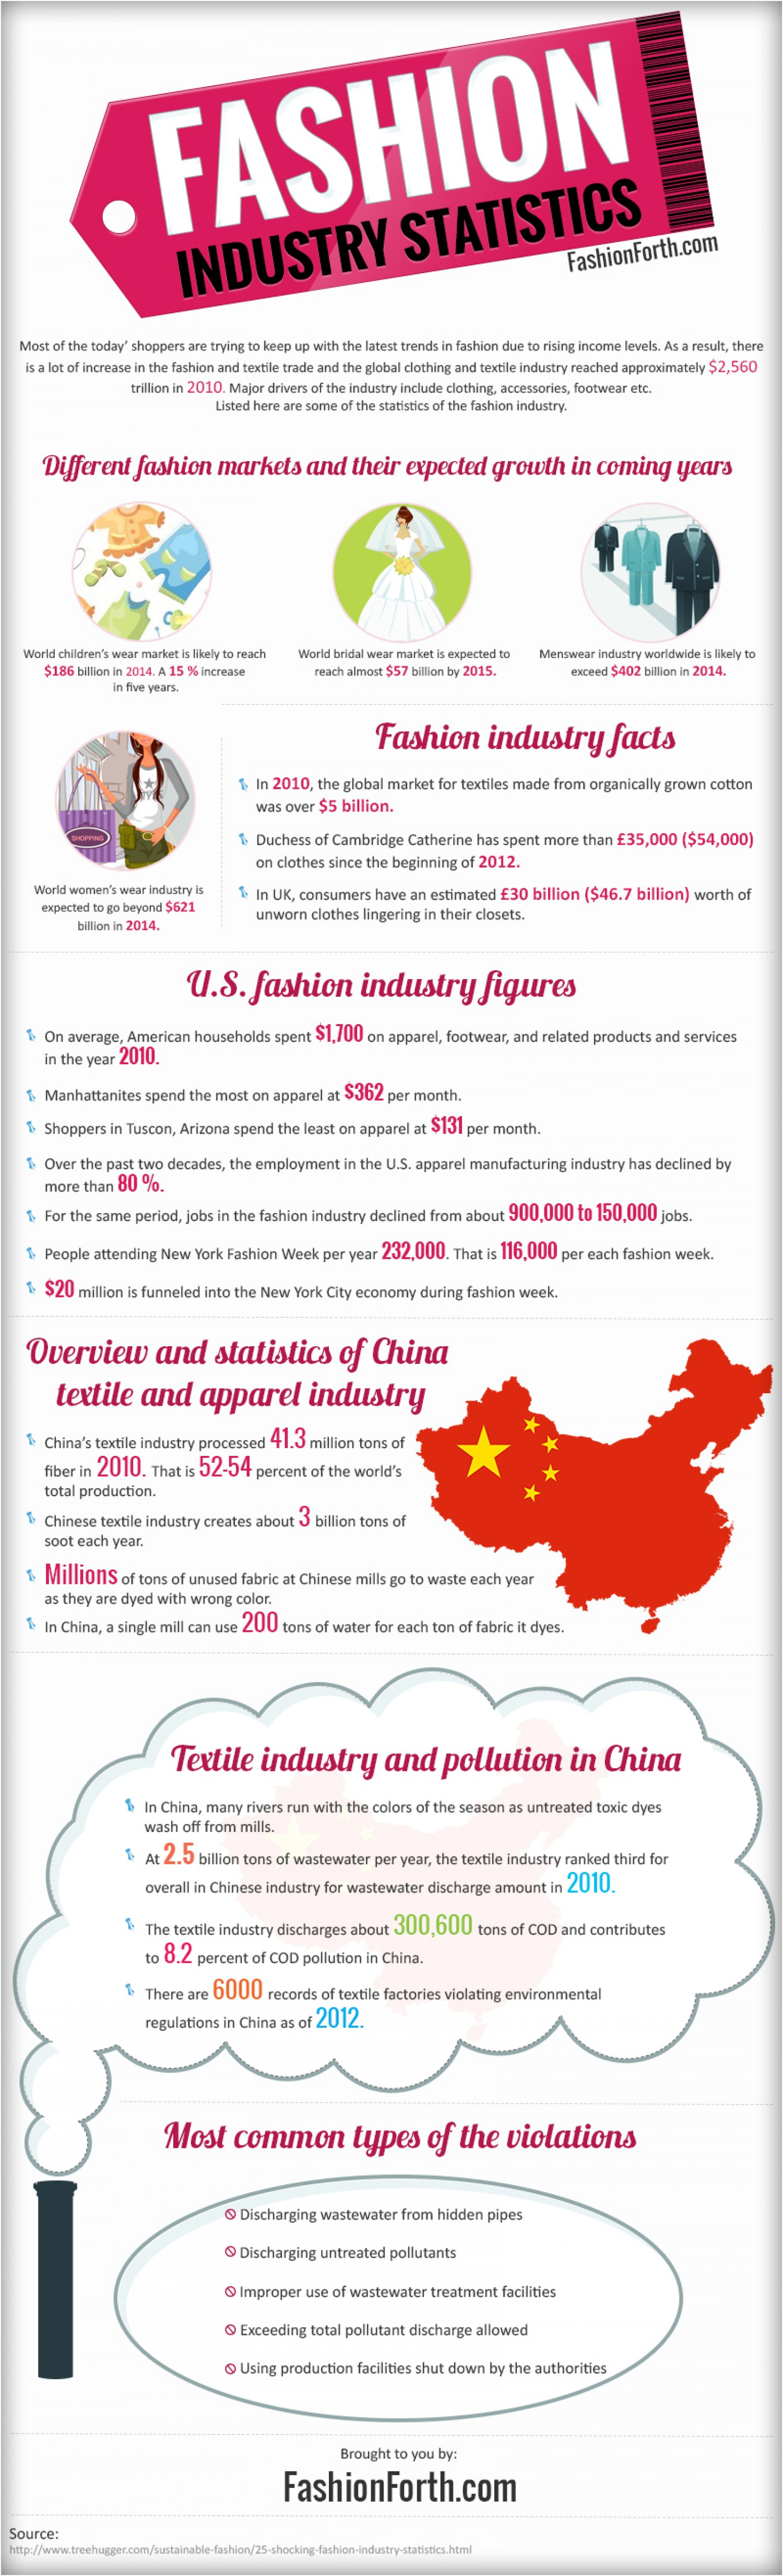 1. Fashion Industry Statistics